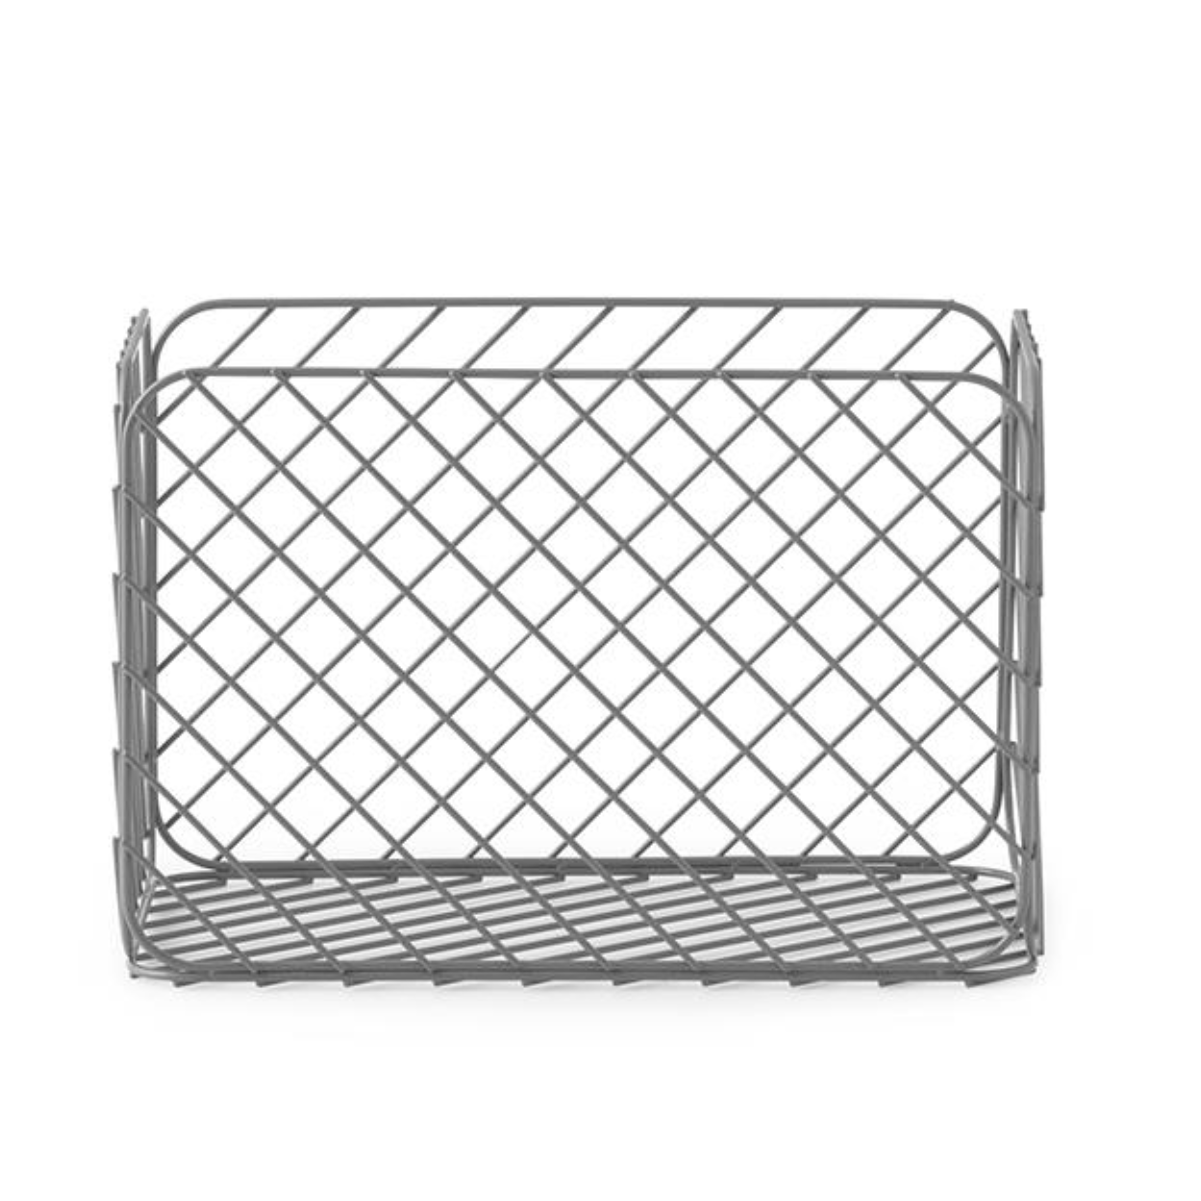 Normann Copenhagen Track basket, grey